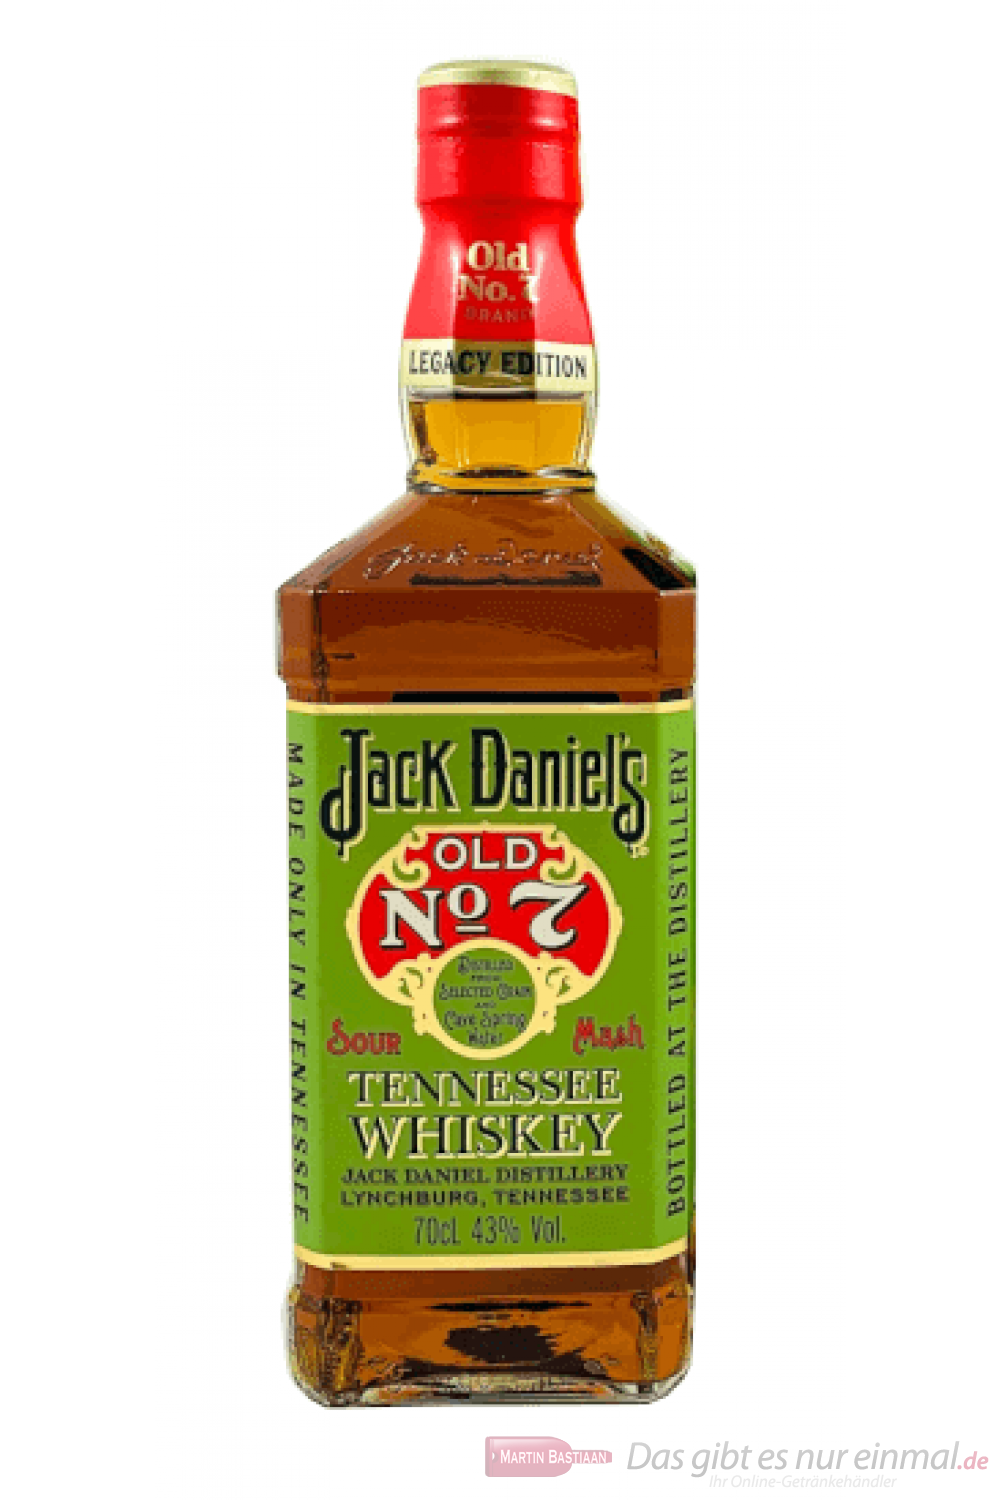 Jack Daniel's Legacy 1905 Edition 1 Tennessee Whiskey 0,7l